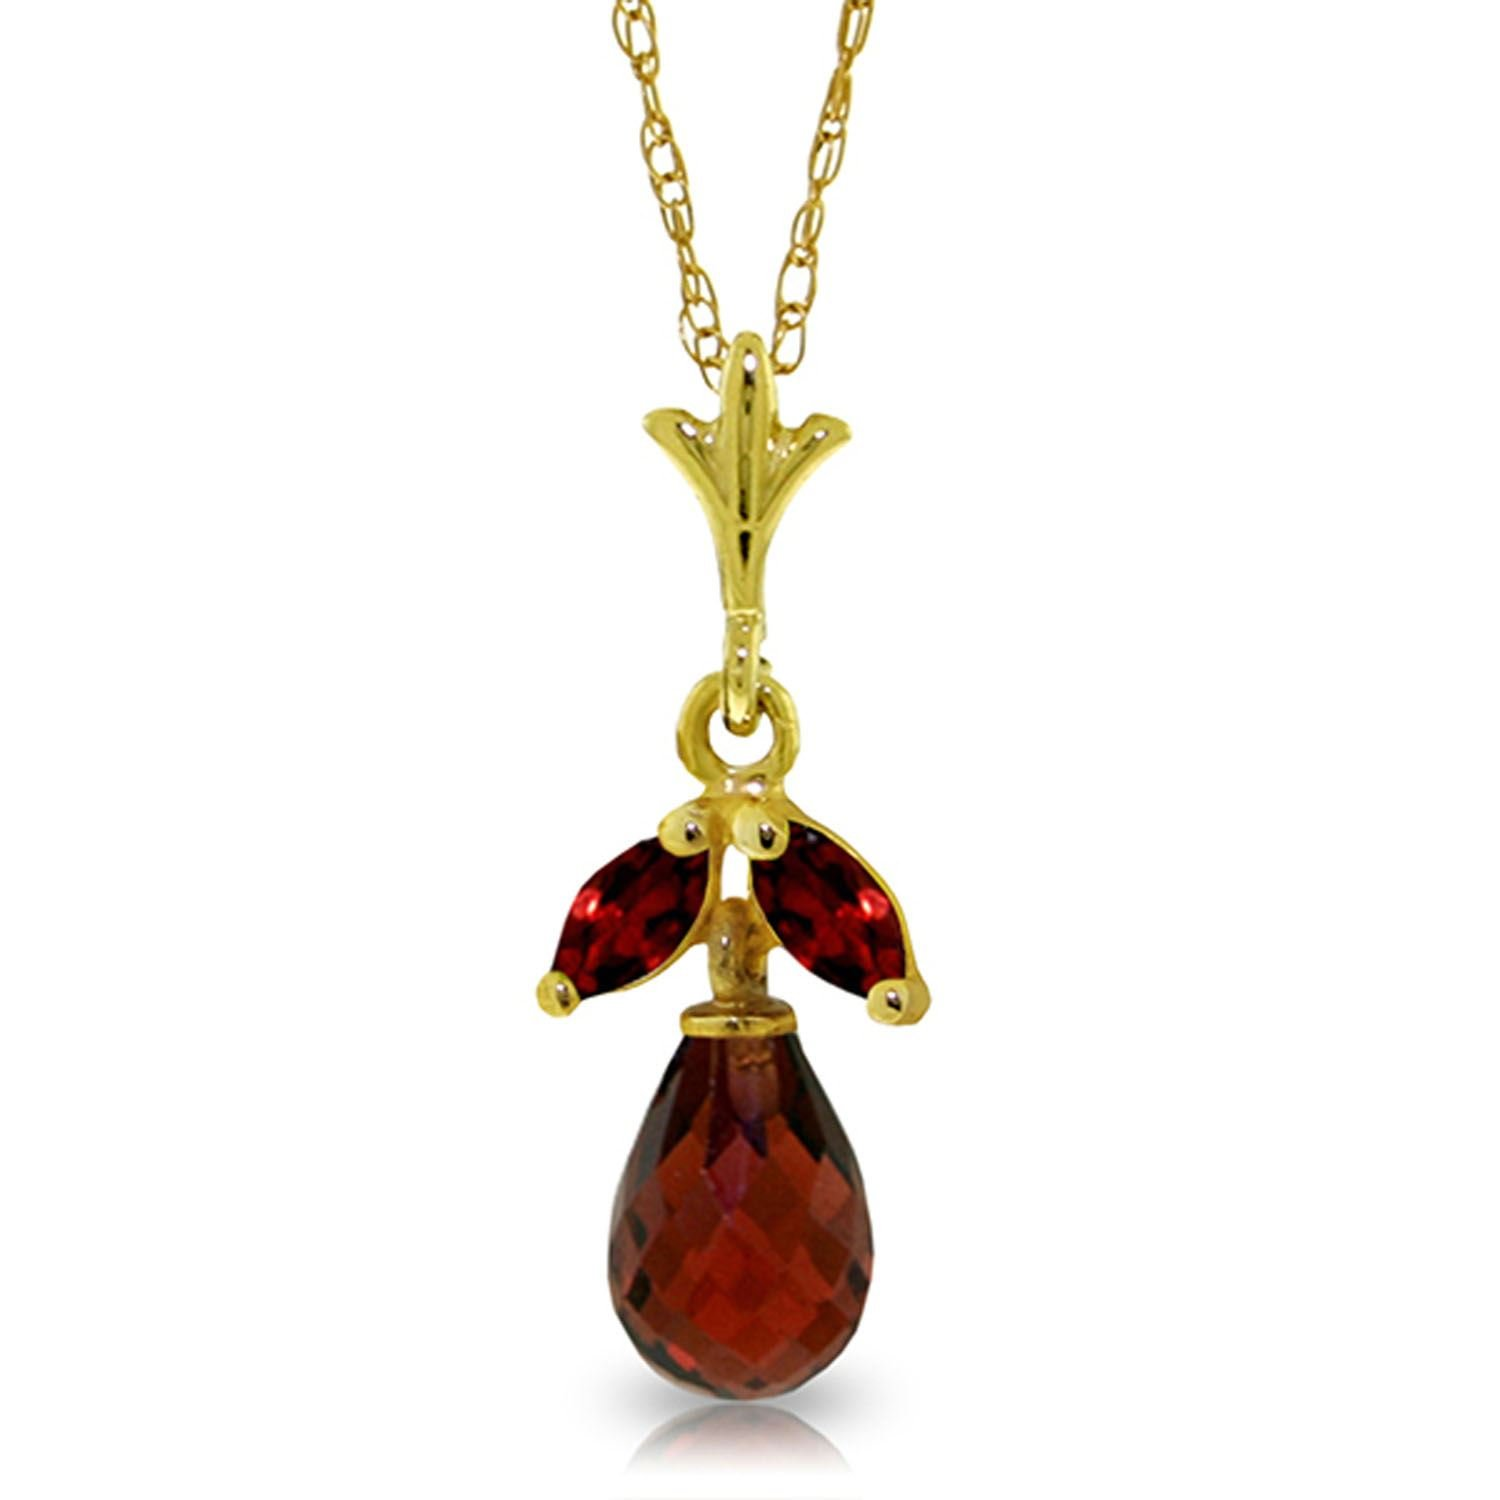 ALARRI 1.7 CTW 14K Solid Gold Passionate Romantic Garnet Necklace with 22 Inch Chain Length